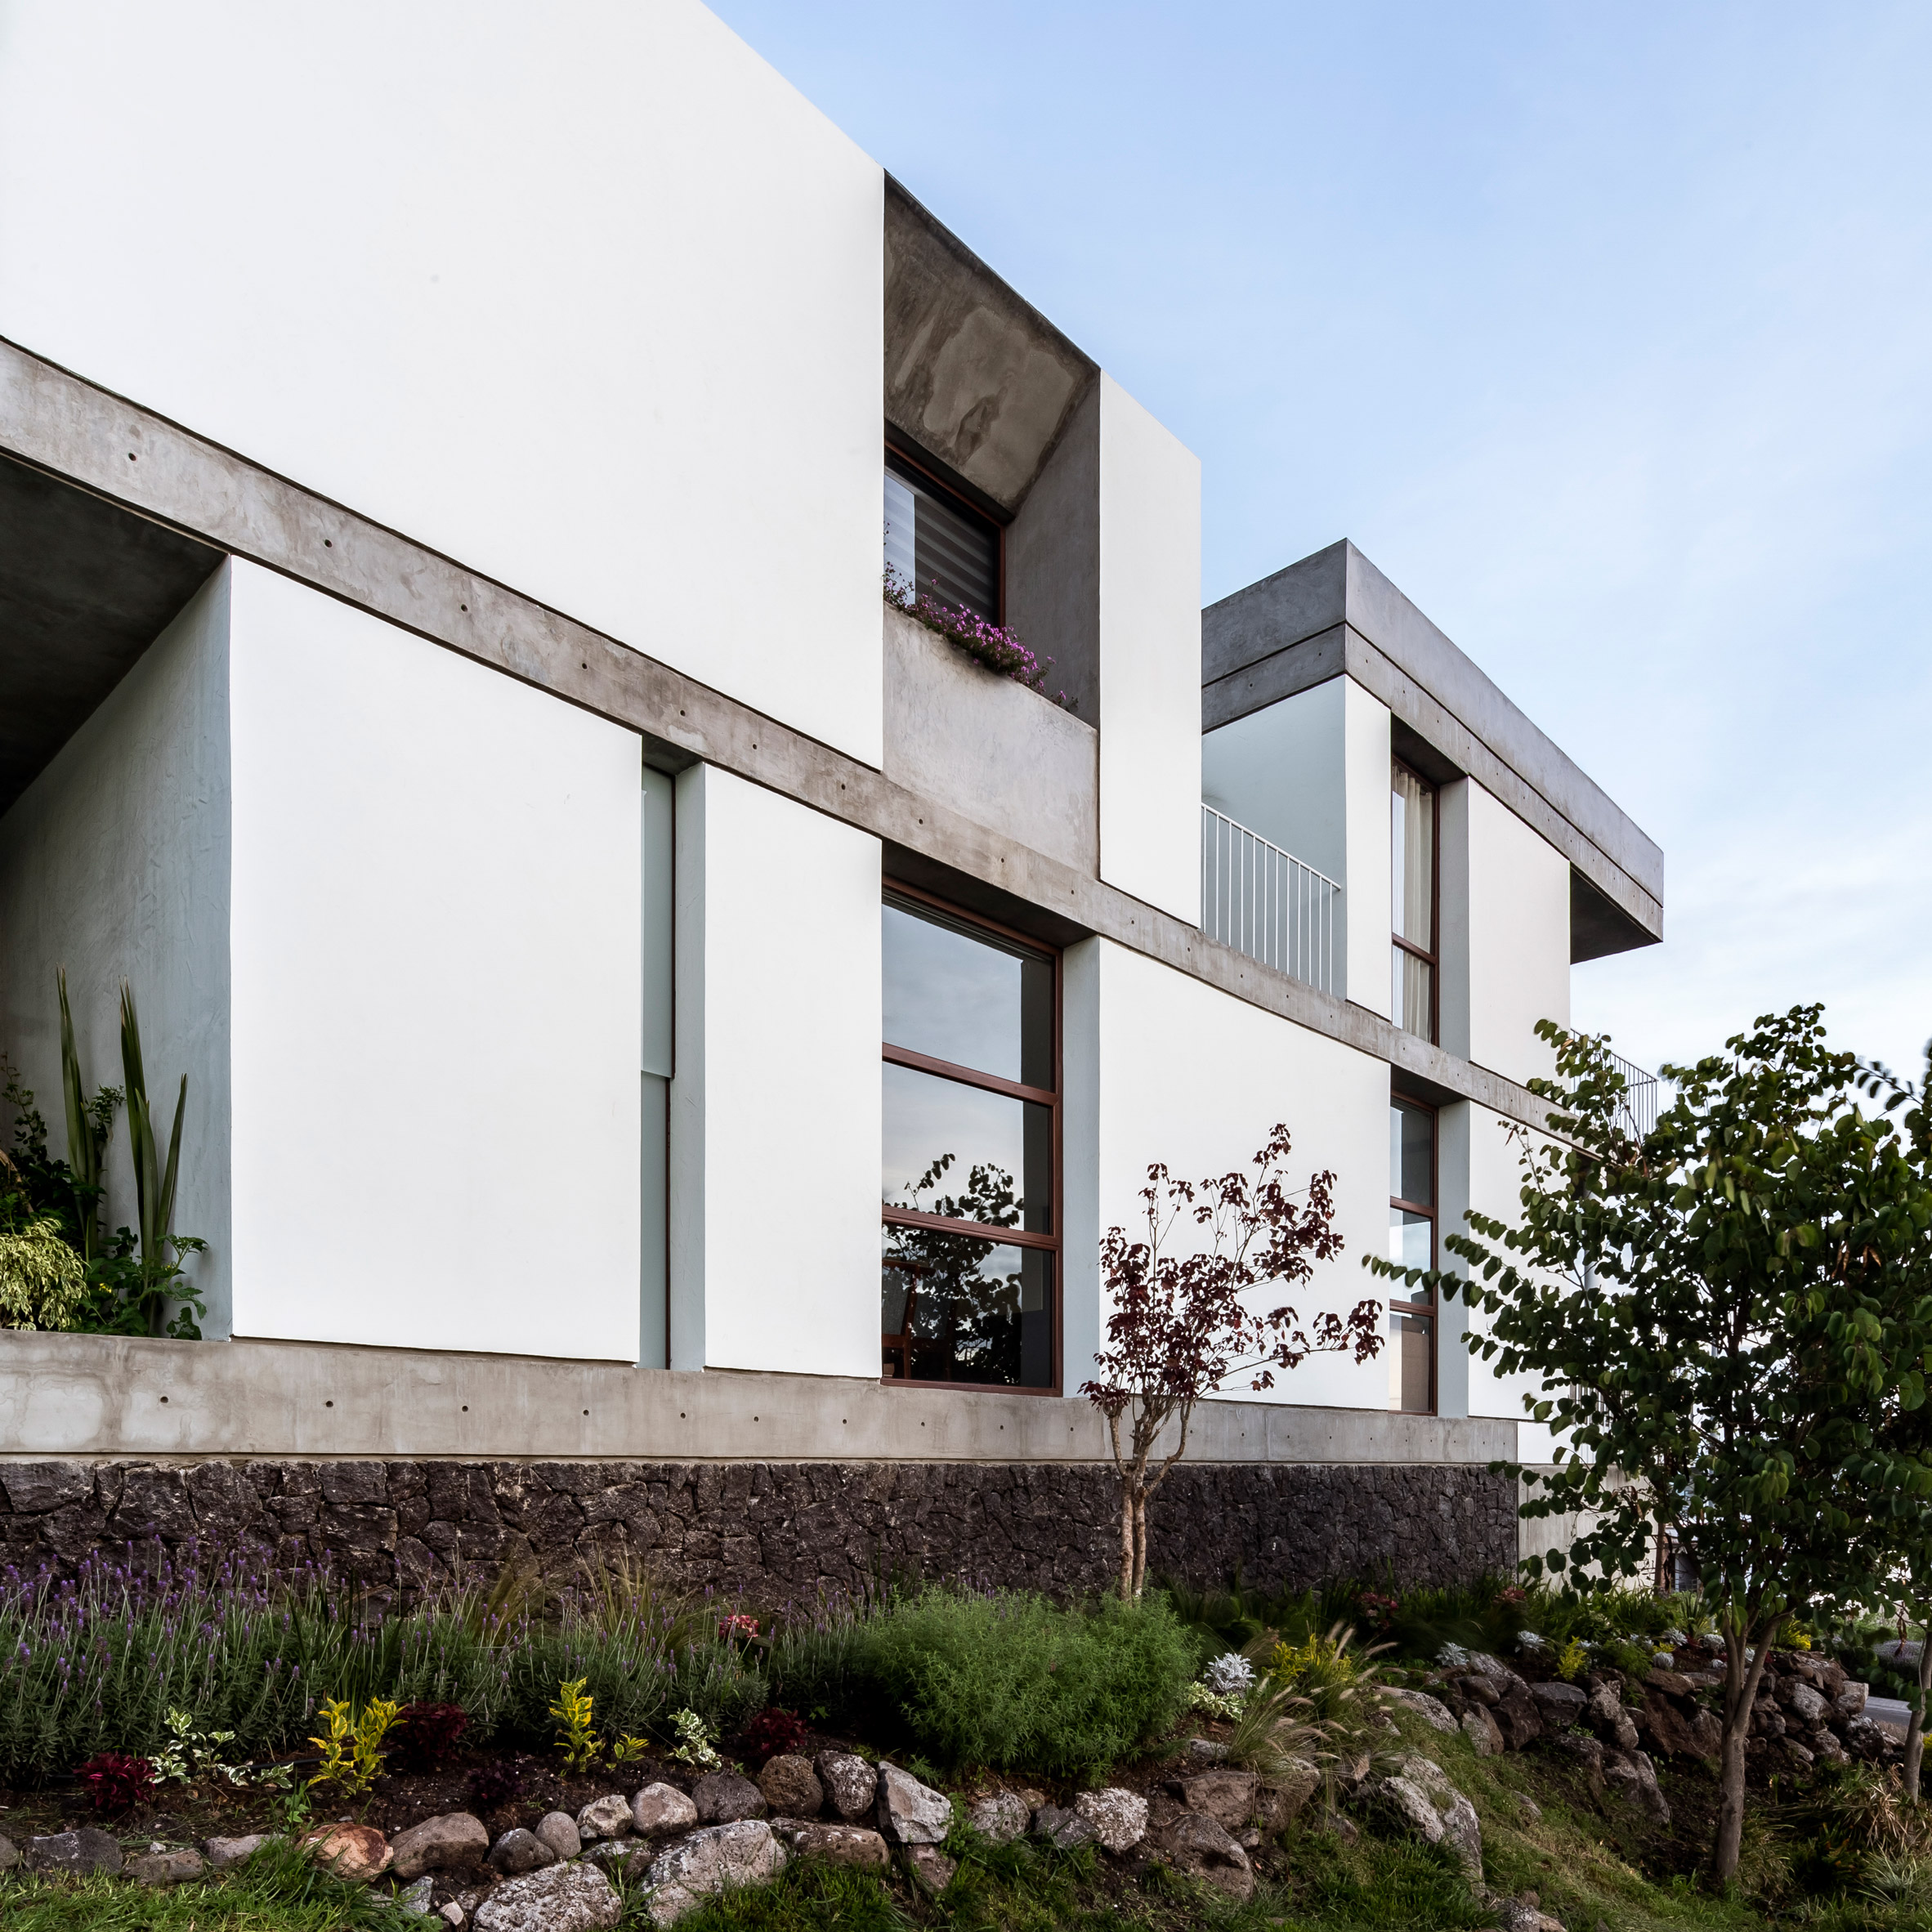 Casa Maguey by Intersticial Arquitectura